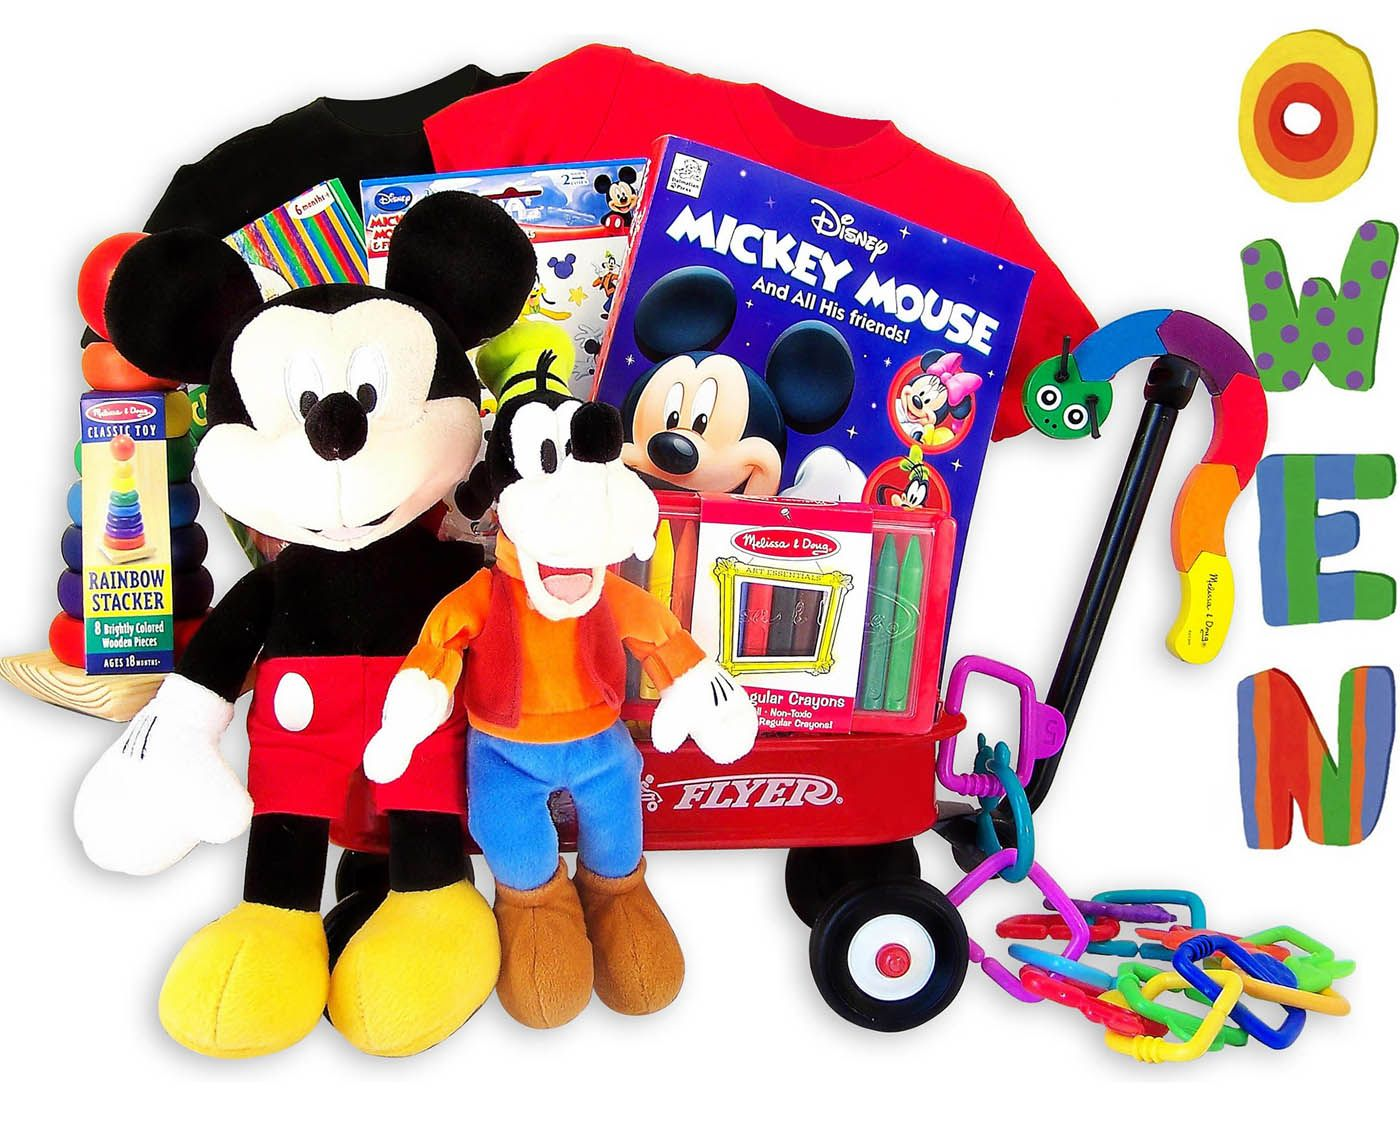 Disney mickey mouse toddler wagon gift personalization avail disney mickey mouse toddler wagon gift personalization avail negle Choice Image